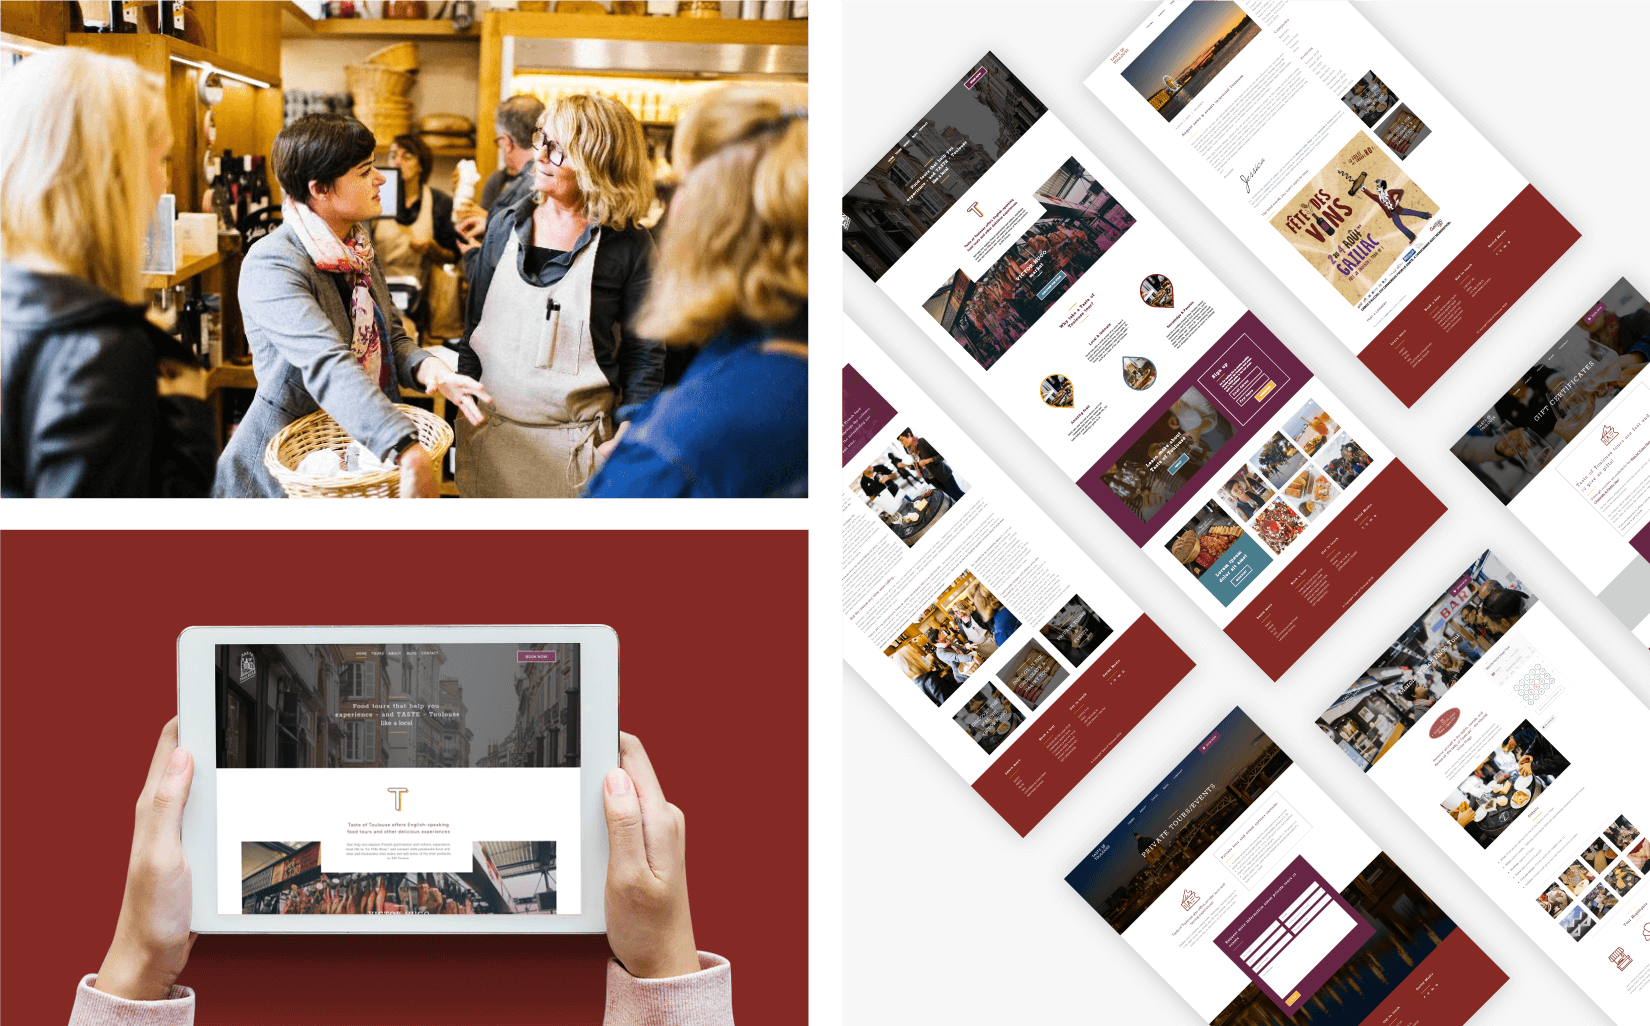 Taste of Toulouse - client of Tapat web agency and creative digital agency - web design screens